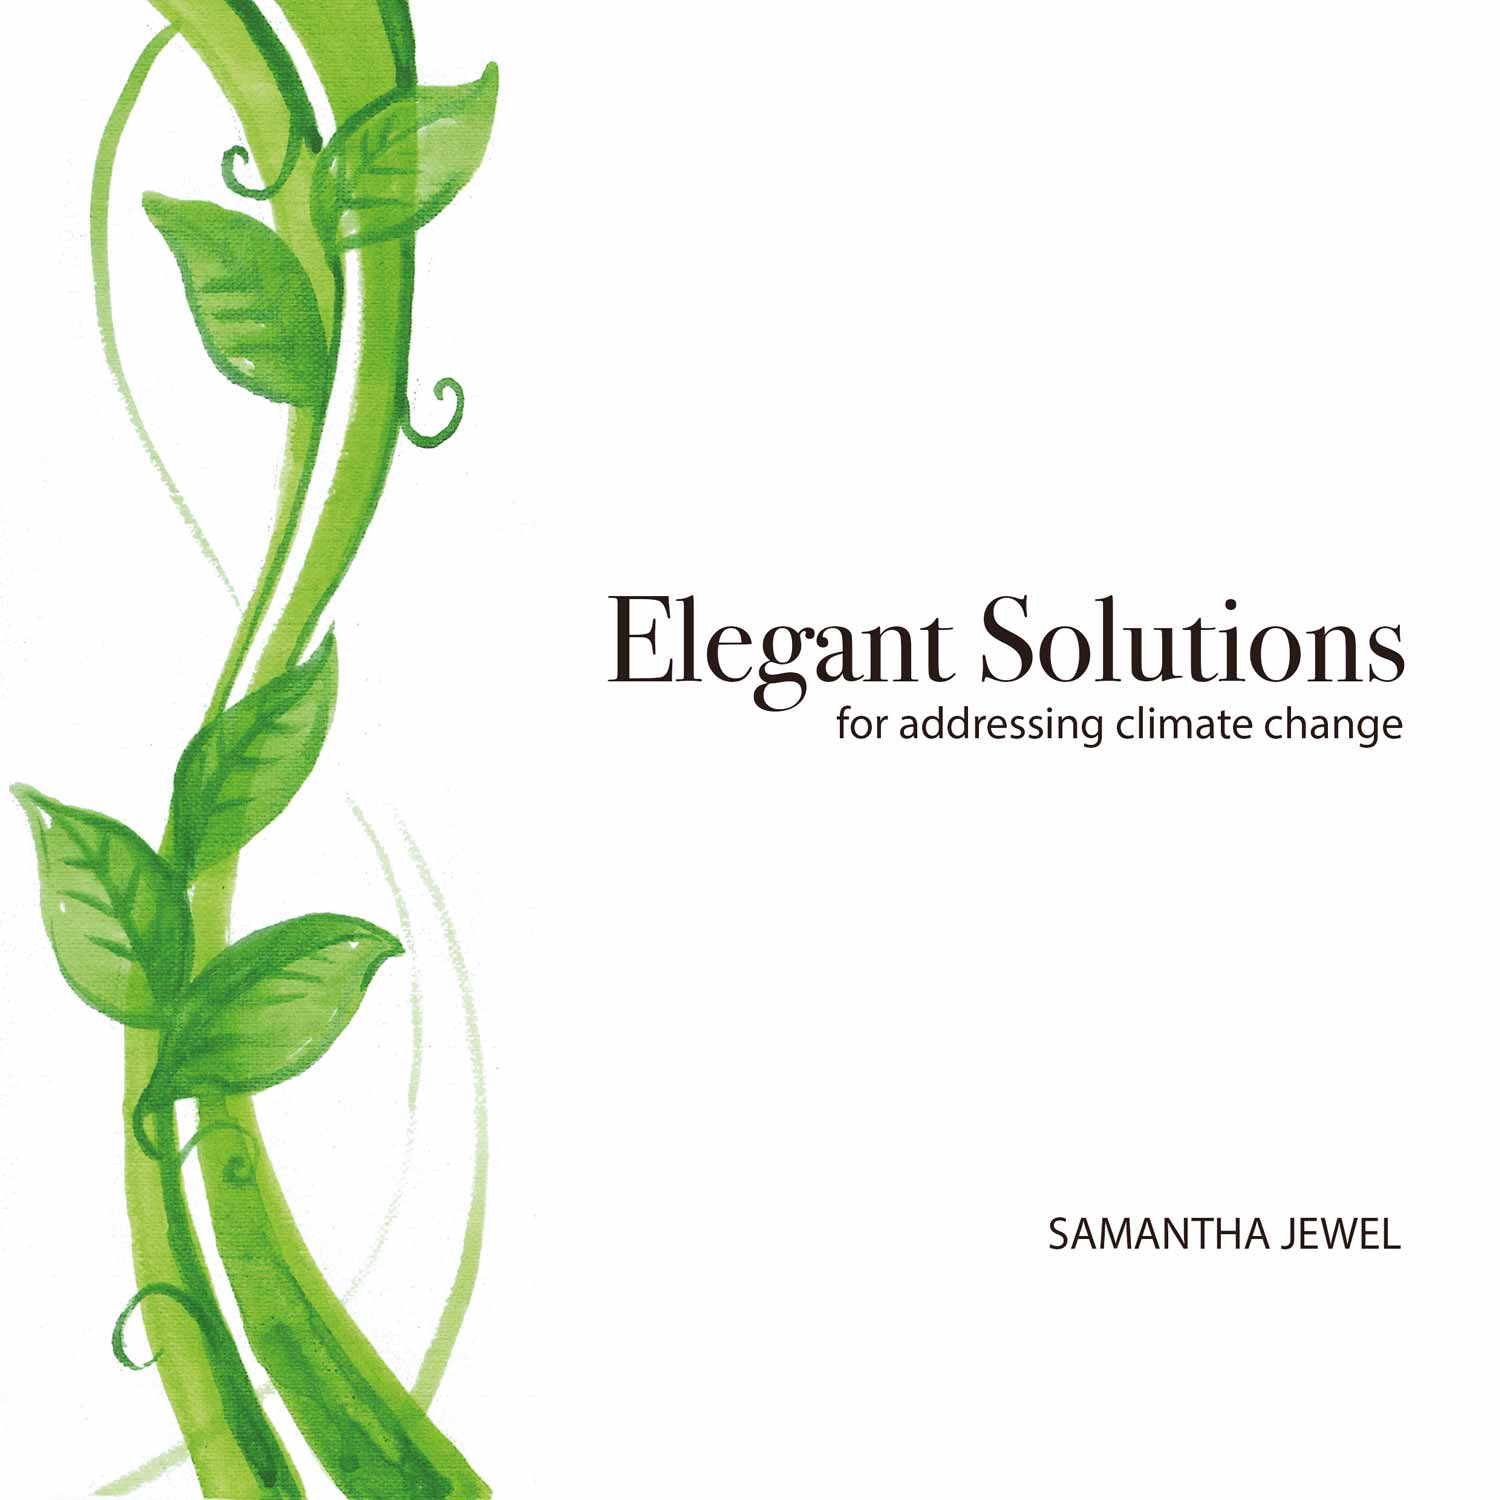 """Author, Speaker, and Activist Samantha Jewel Addresses Environment Issues in her Book """"Elegant Solutions for Addressing Climate Change"""""""